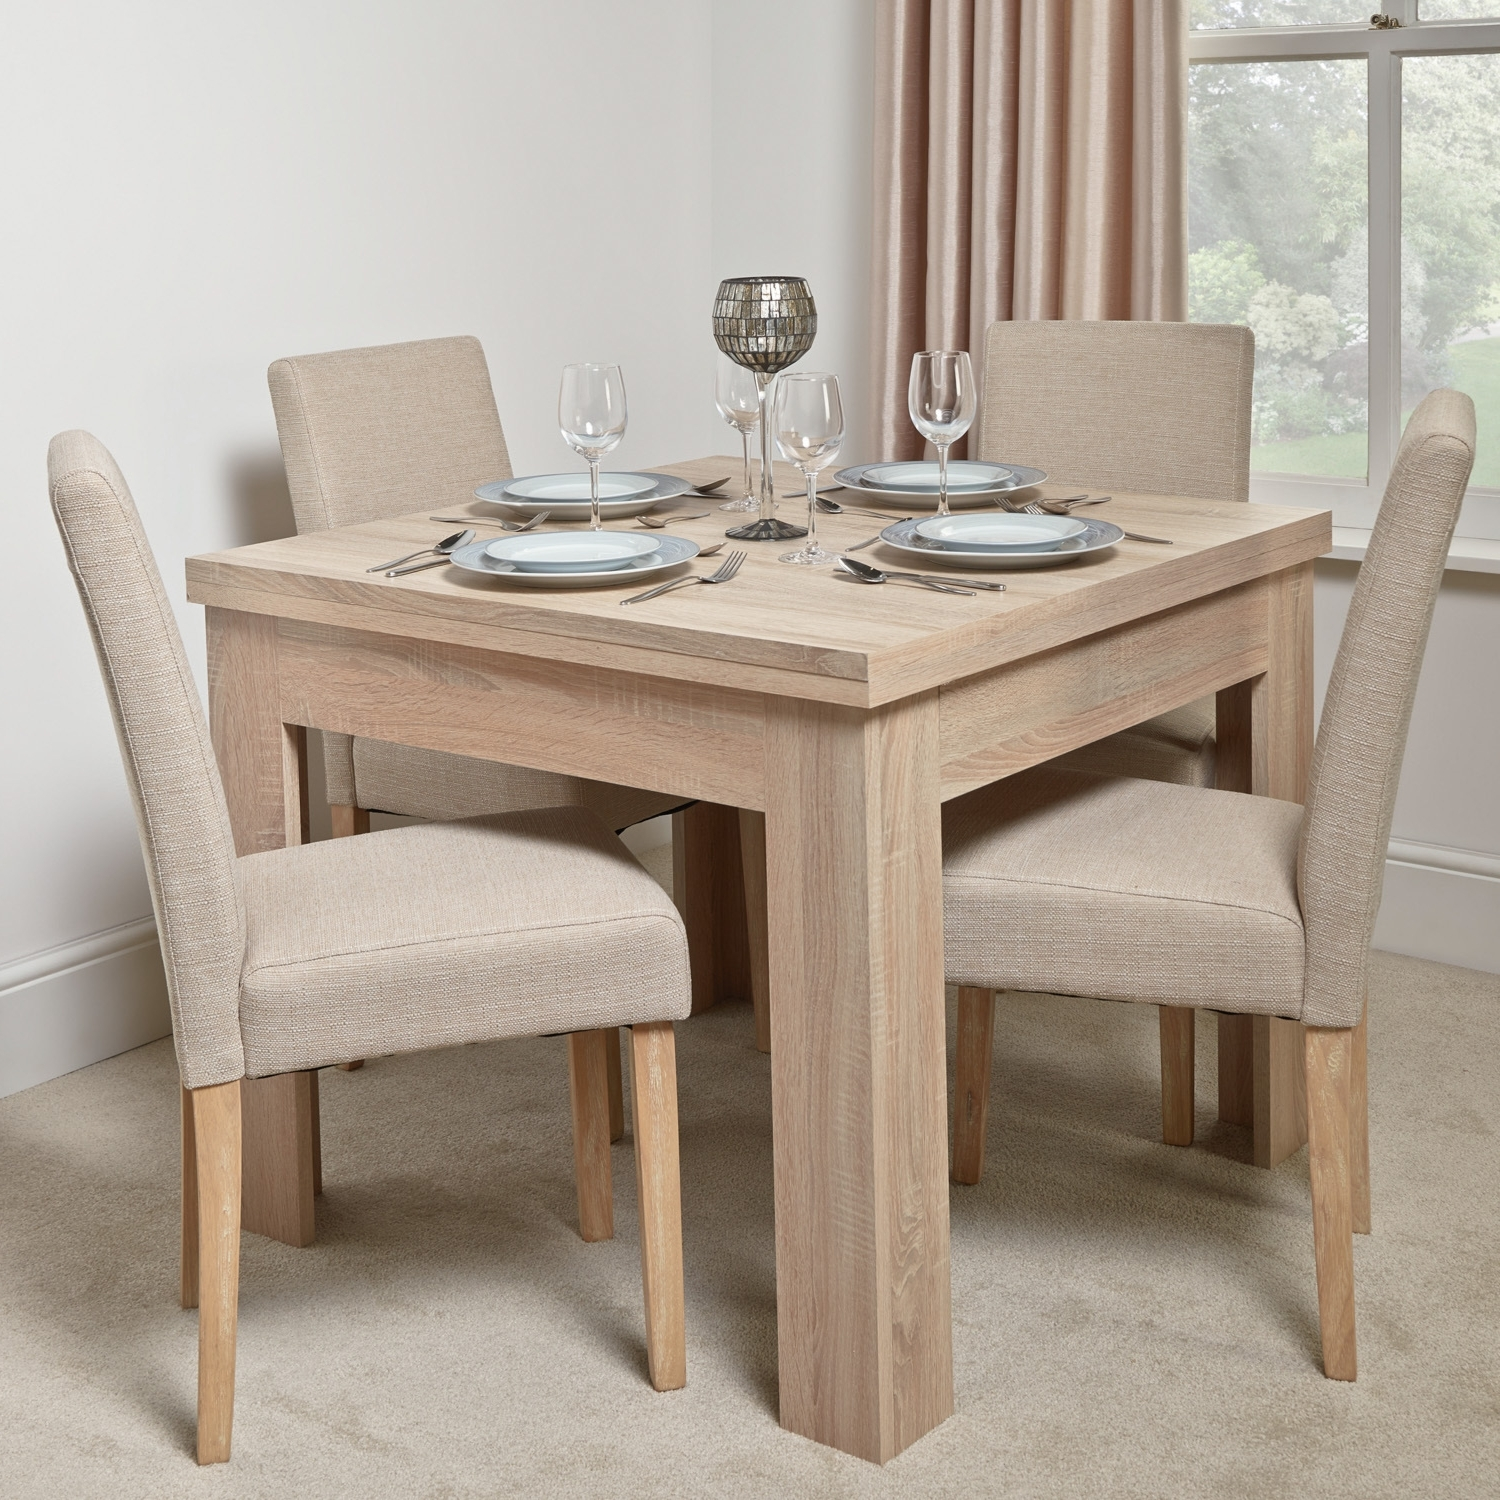 Extendable Dining Tables With 6 Chairs In Famous Calpe Flip Extending Dining Table (View 7 of 25)